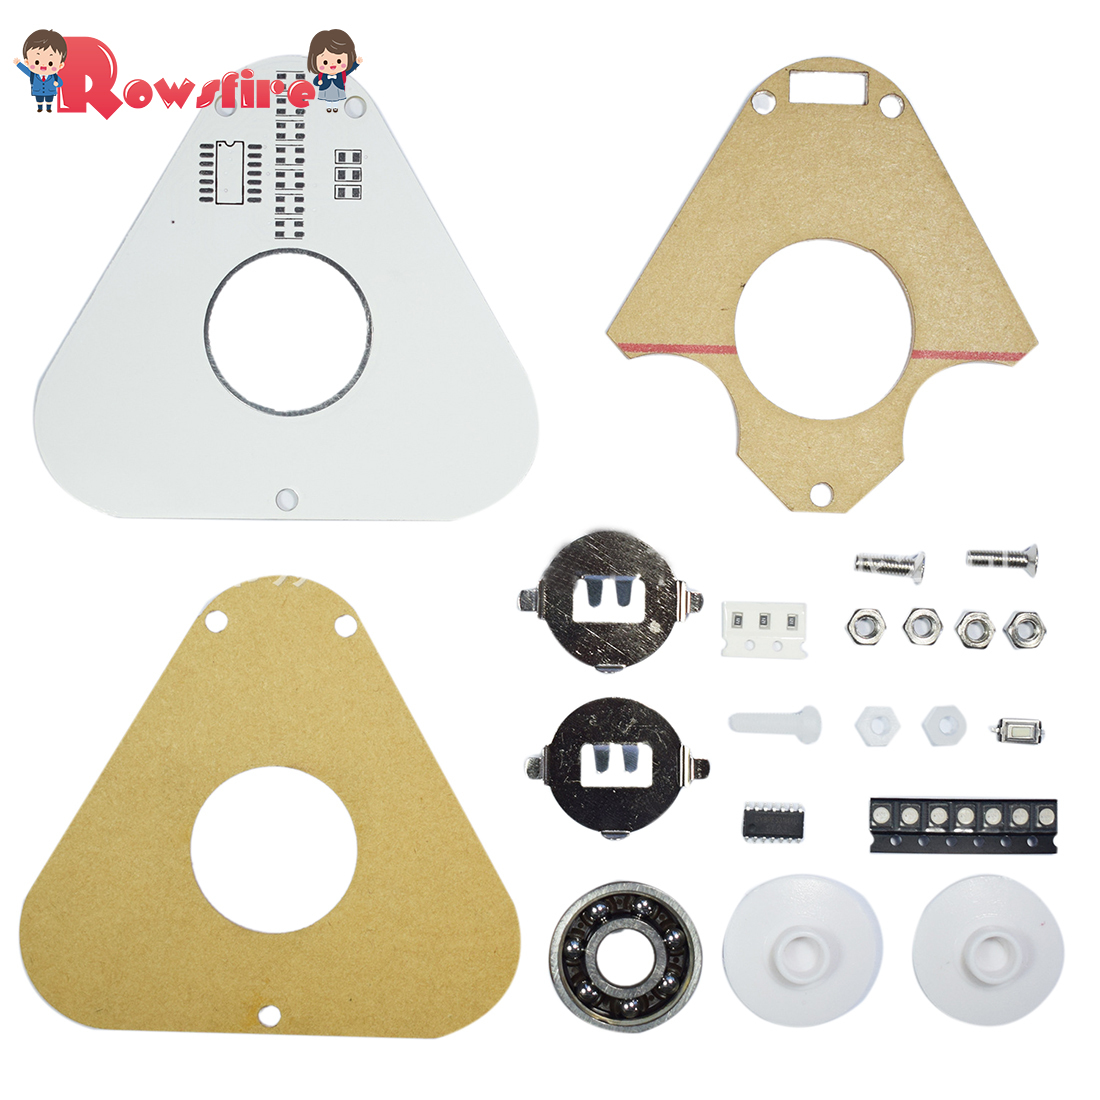 DIY Round Triangle LED Palm-Top POV Rotation SMD Learning Kit